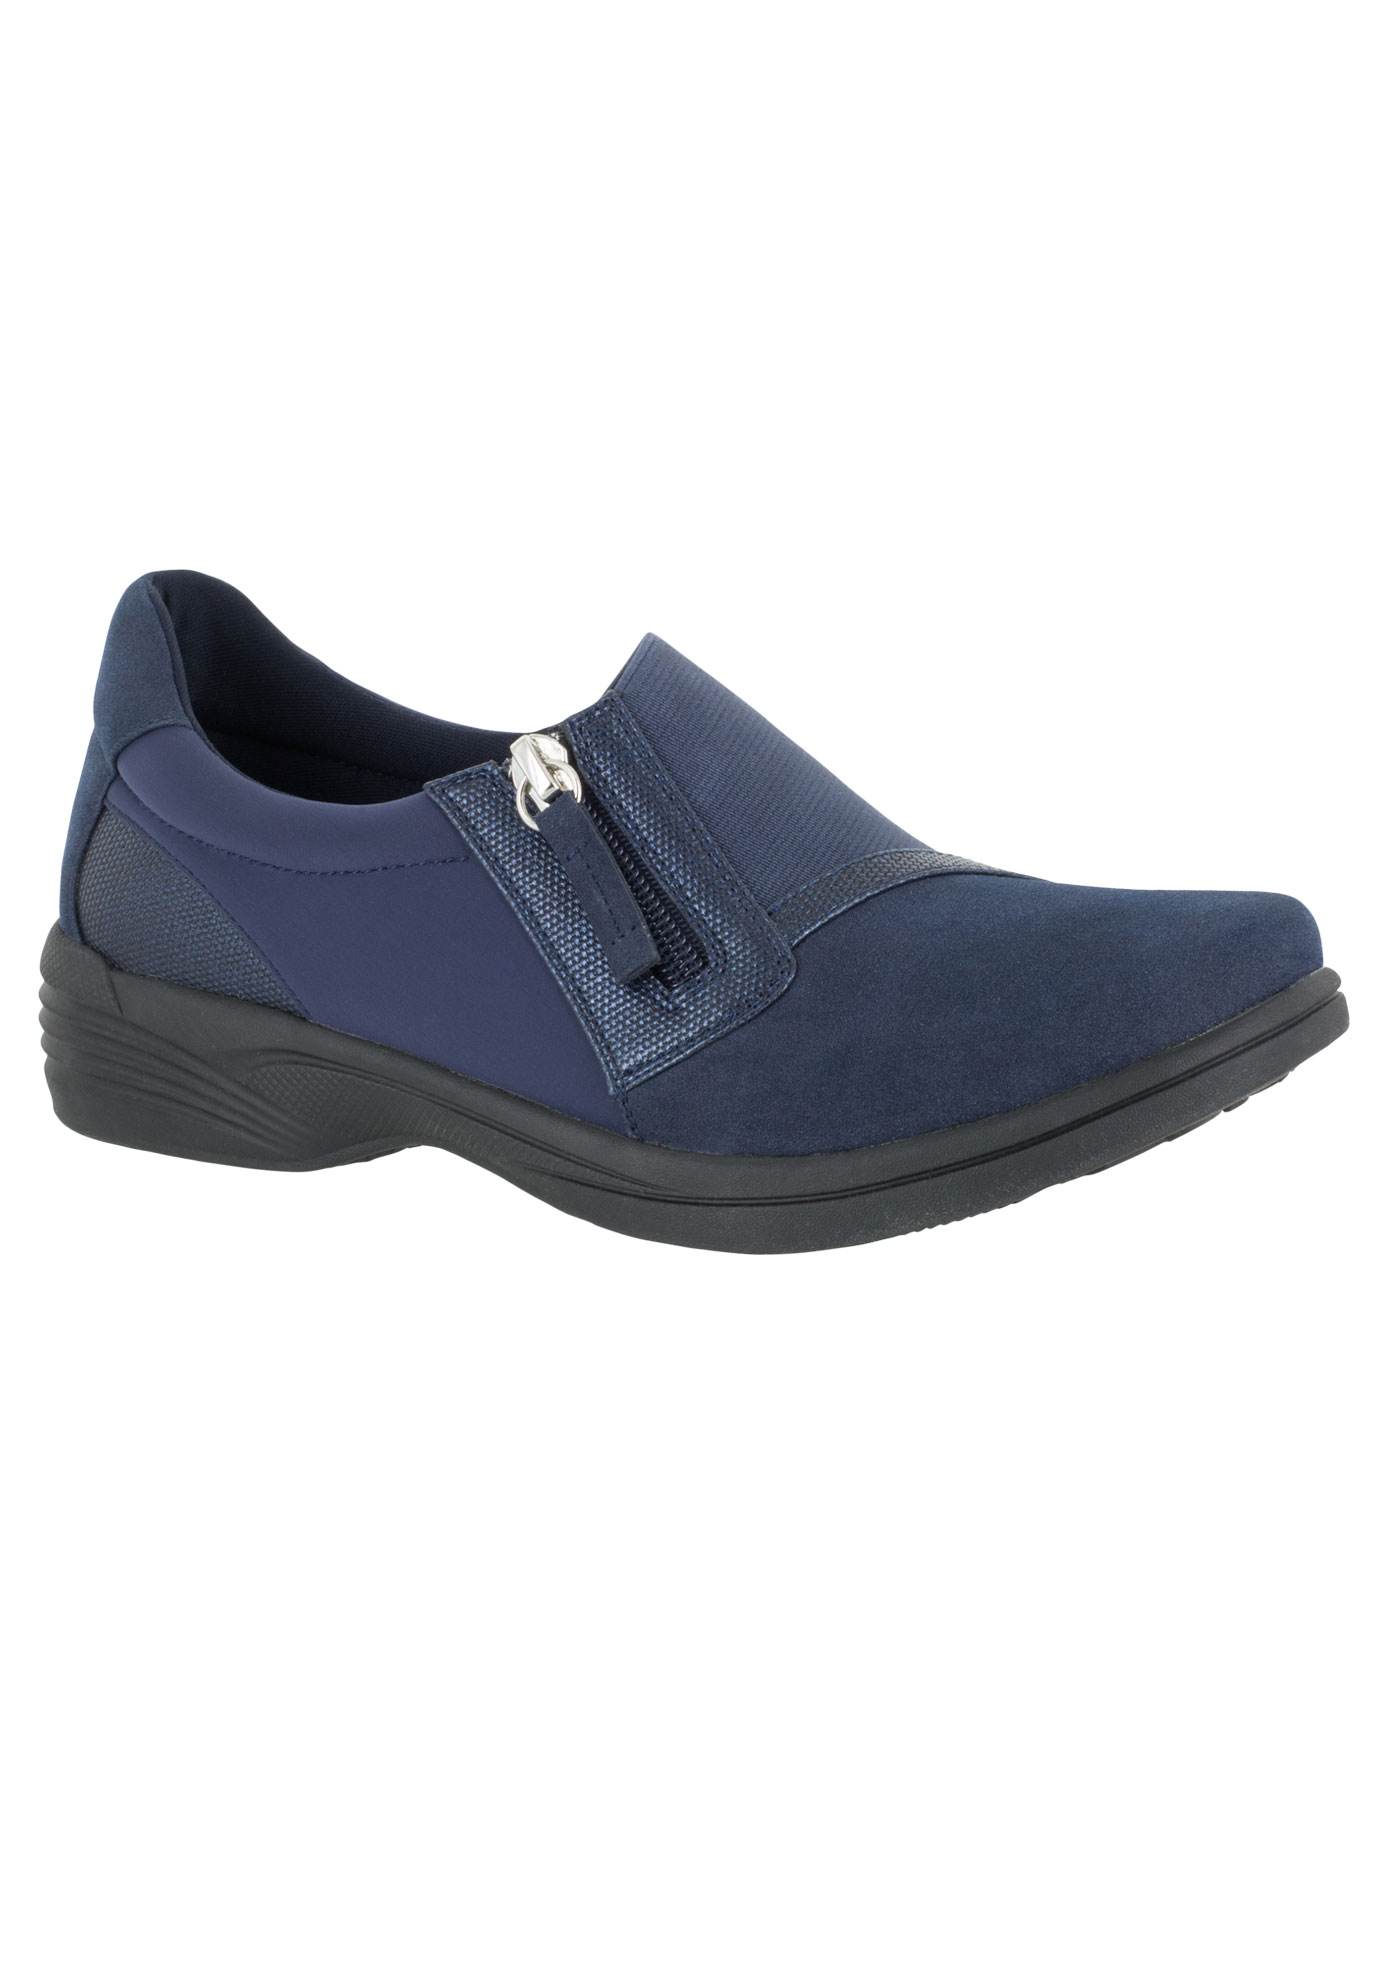 Dreamy So Lite Slip-Ons by Easy Street®,